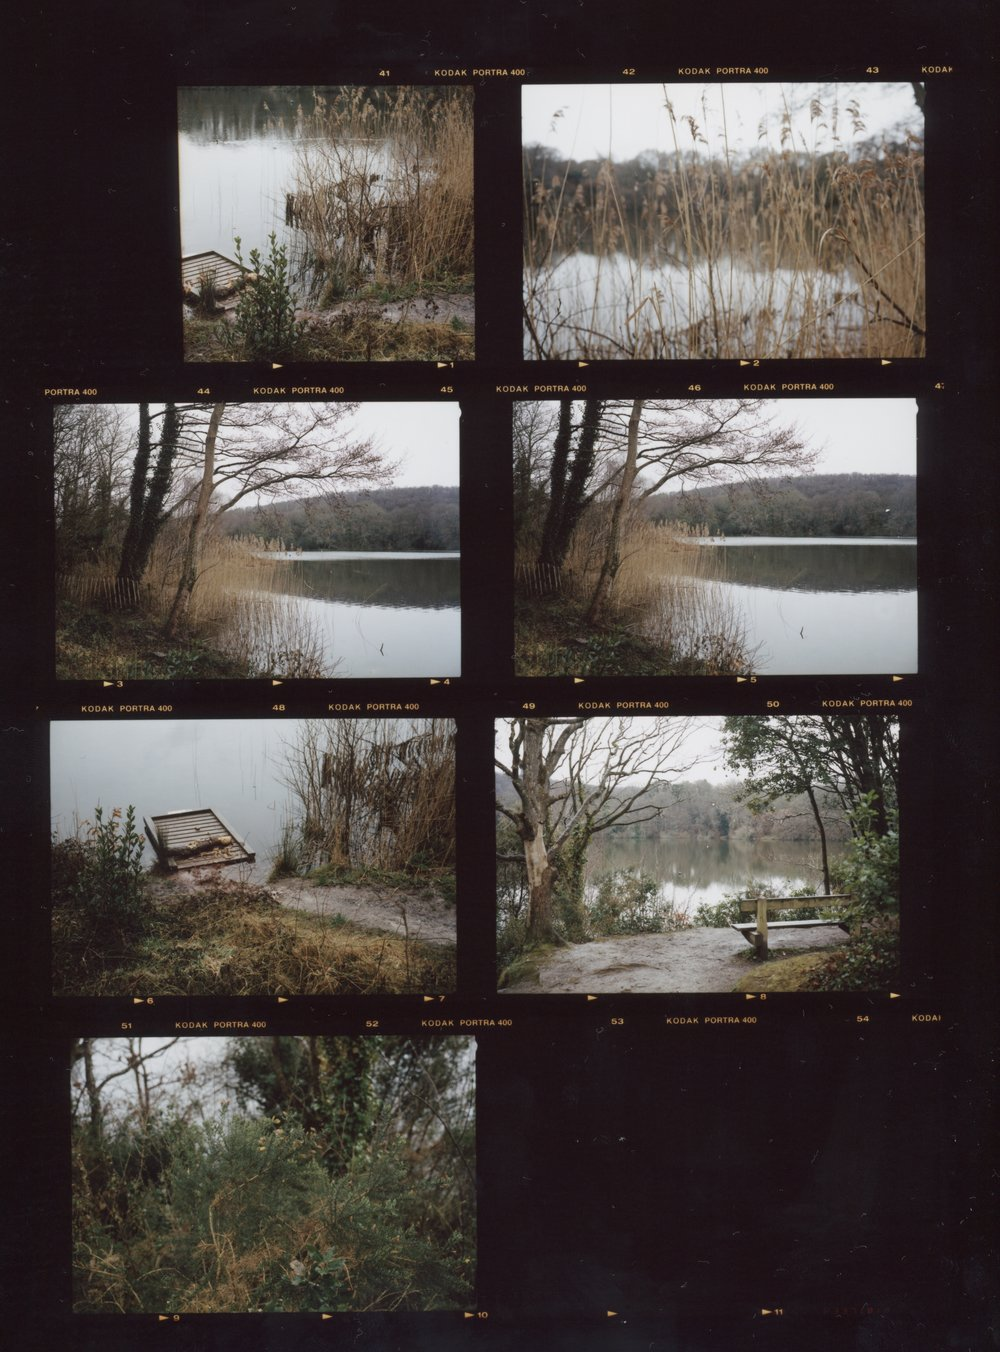 Contact Sheet #3, Anthony Prothero, 2018